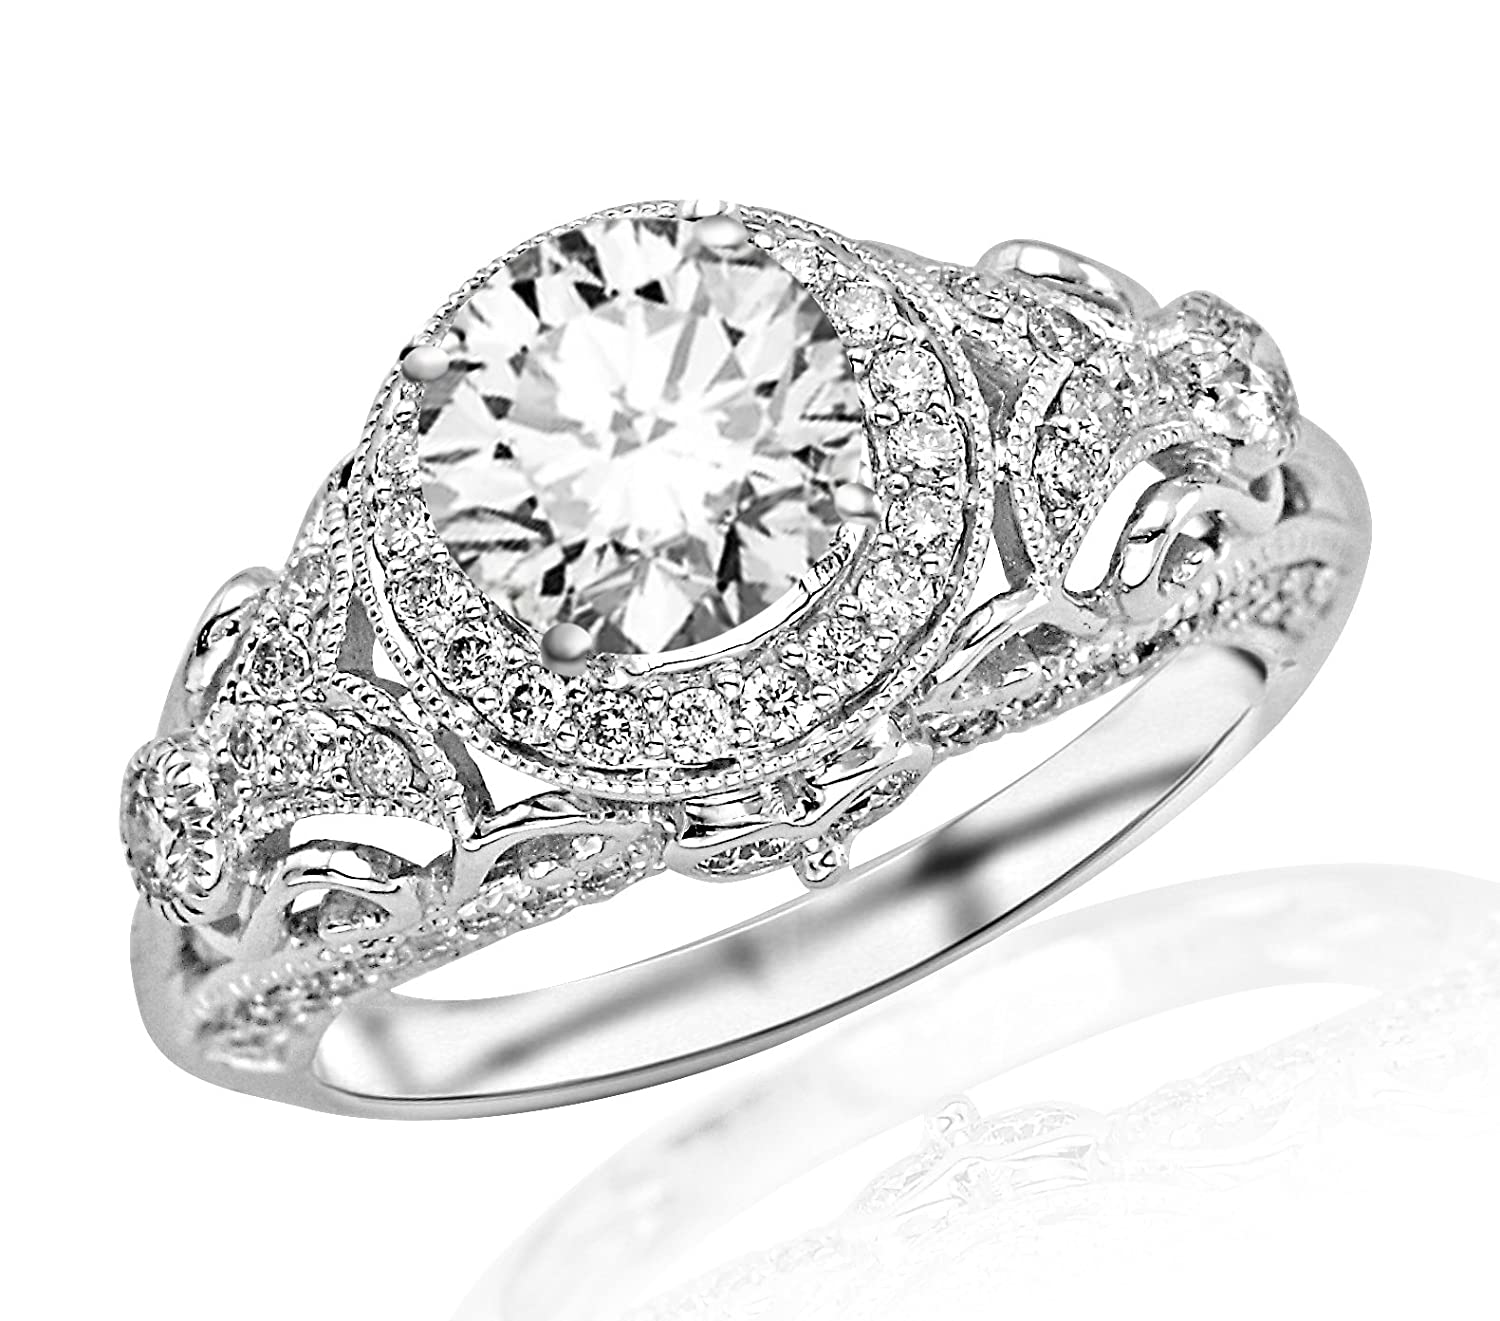 1 7 Carat Round Cut Round Diamond Engagement Ring 14K White Gold